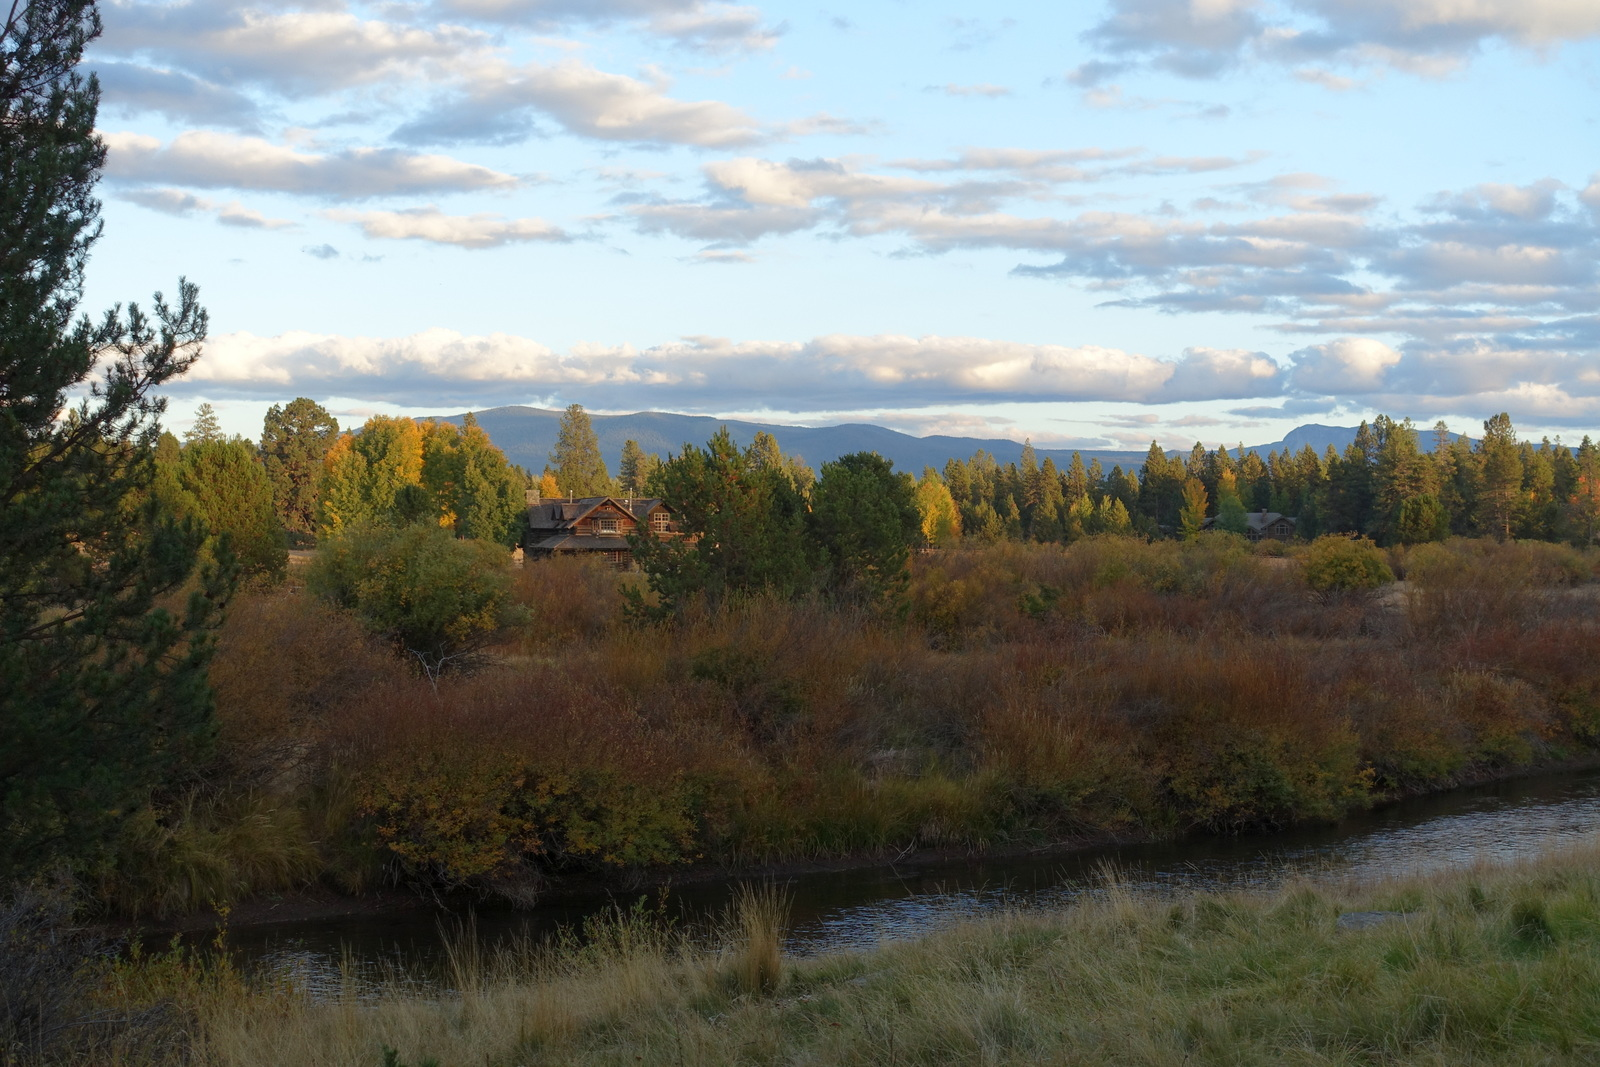 Willows, log house, mountains in evening light